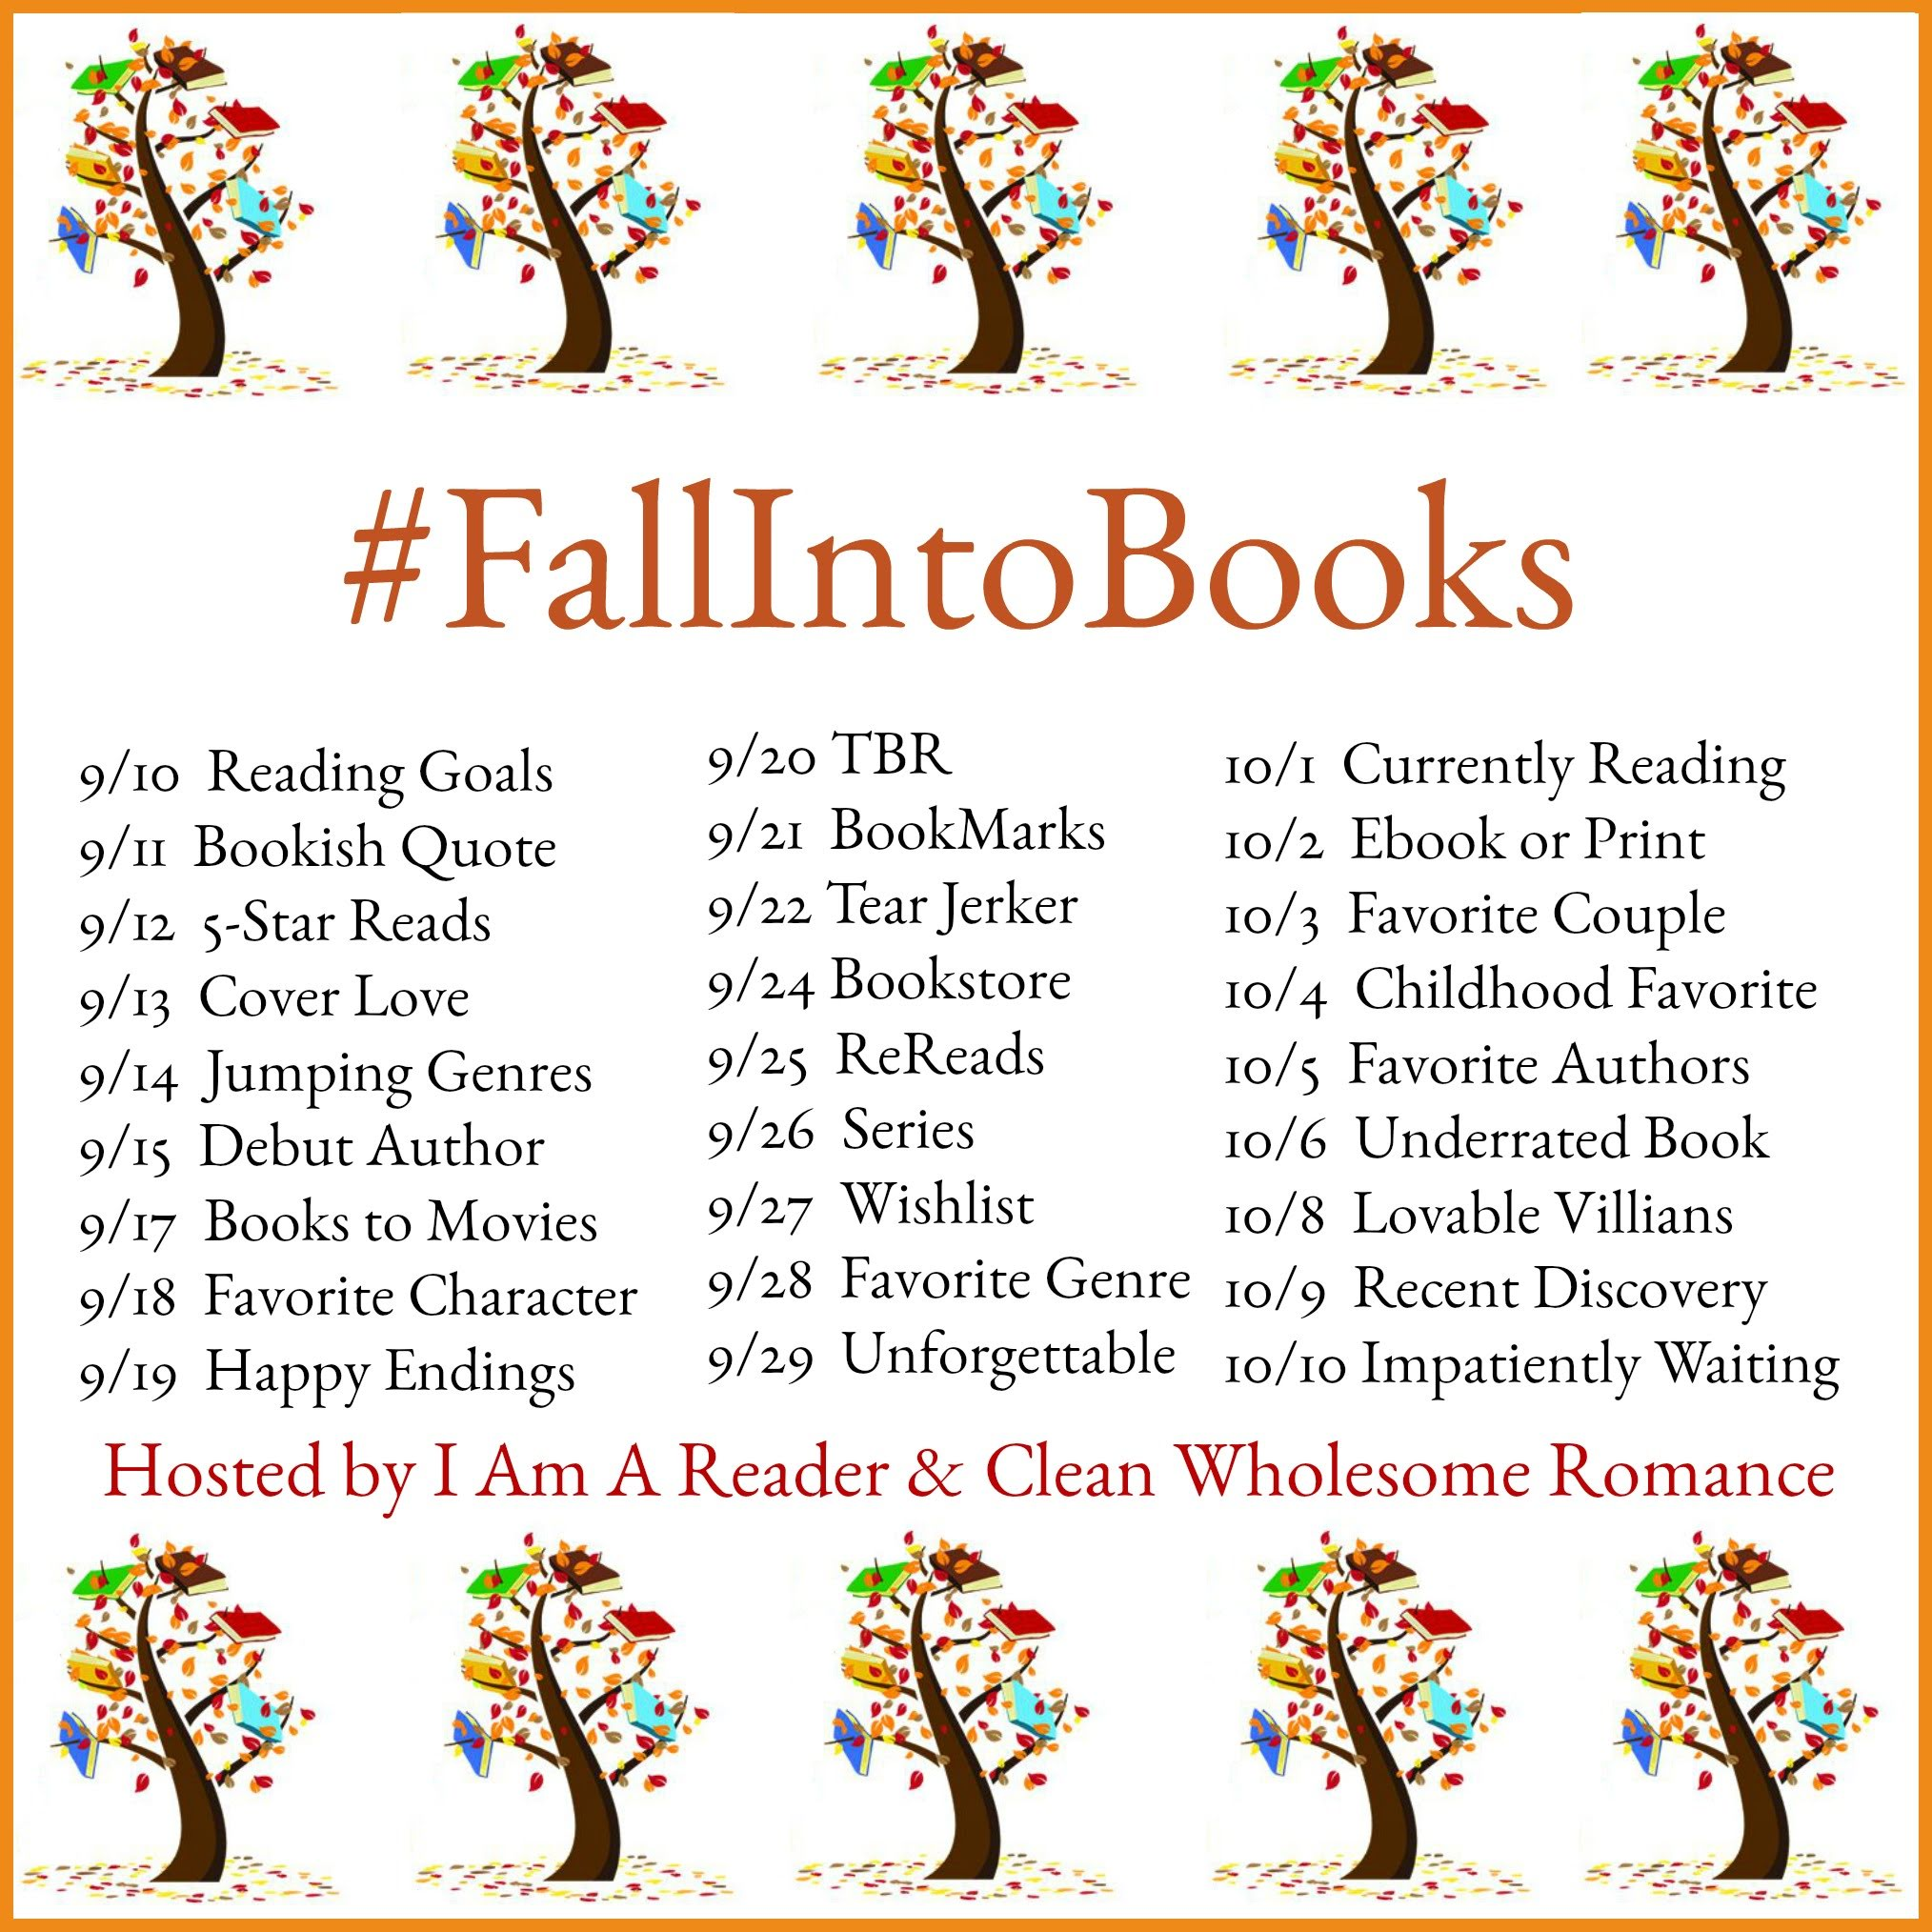 fall-into-books-challenge-1